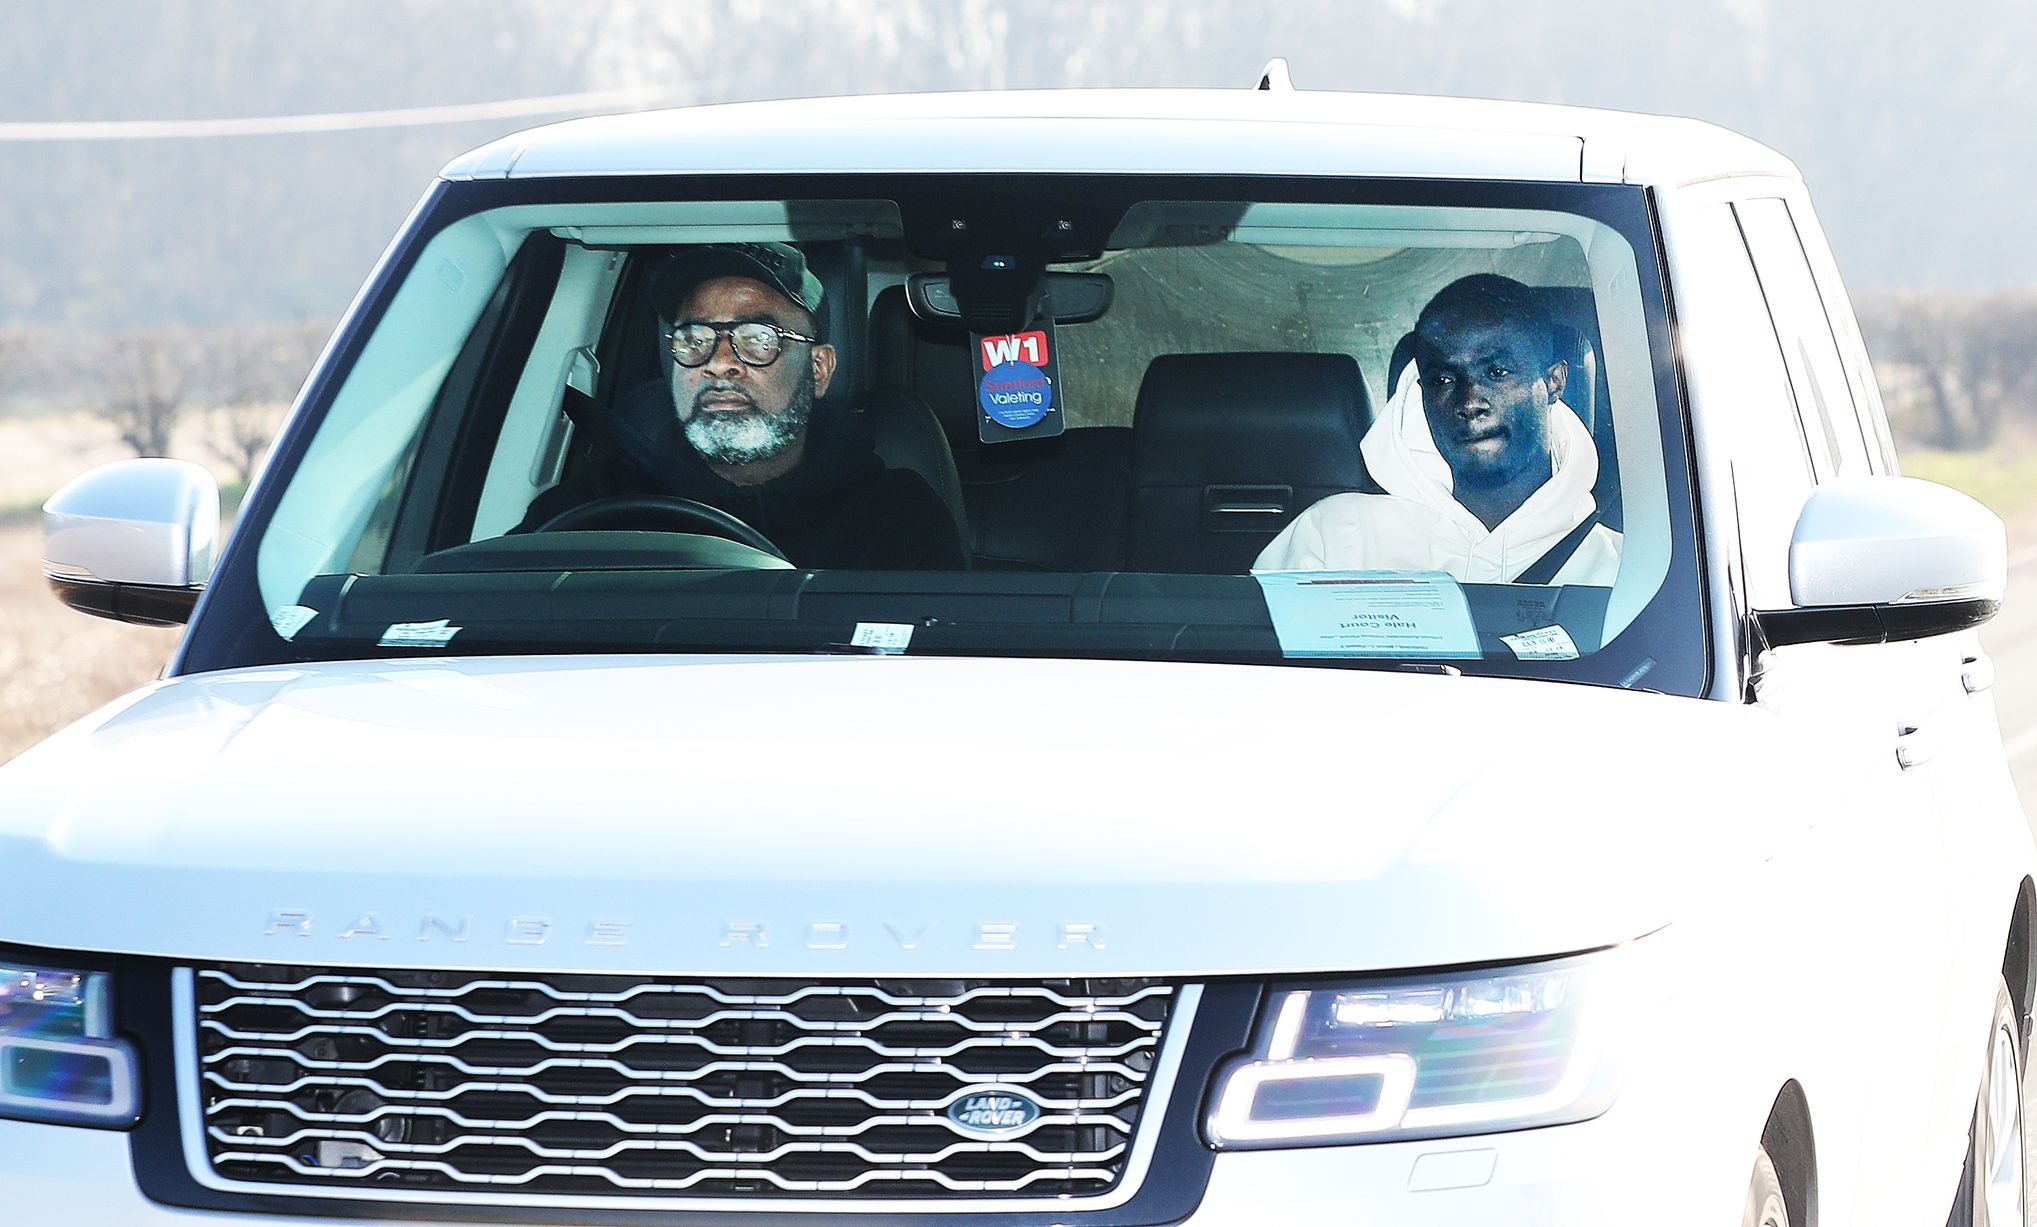 Pictures: Manchester United players arrive at Carrington as Man City preparations begin - Bóng Đá